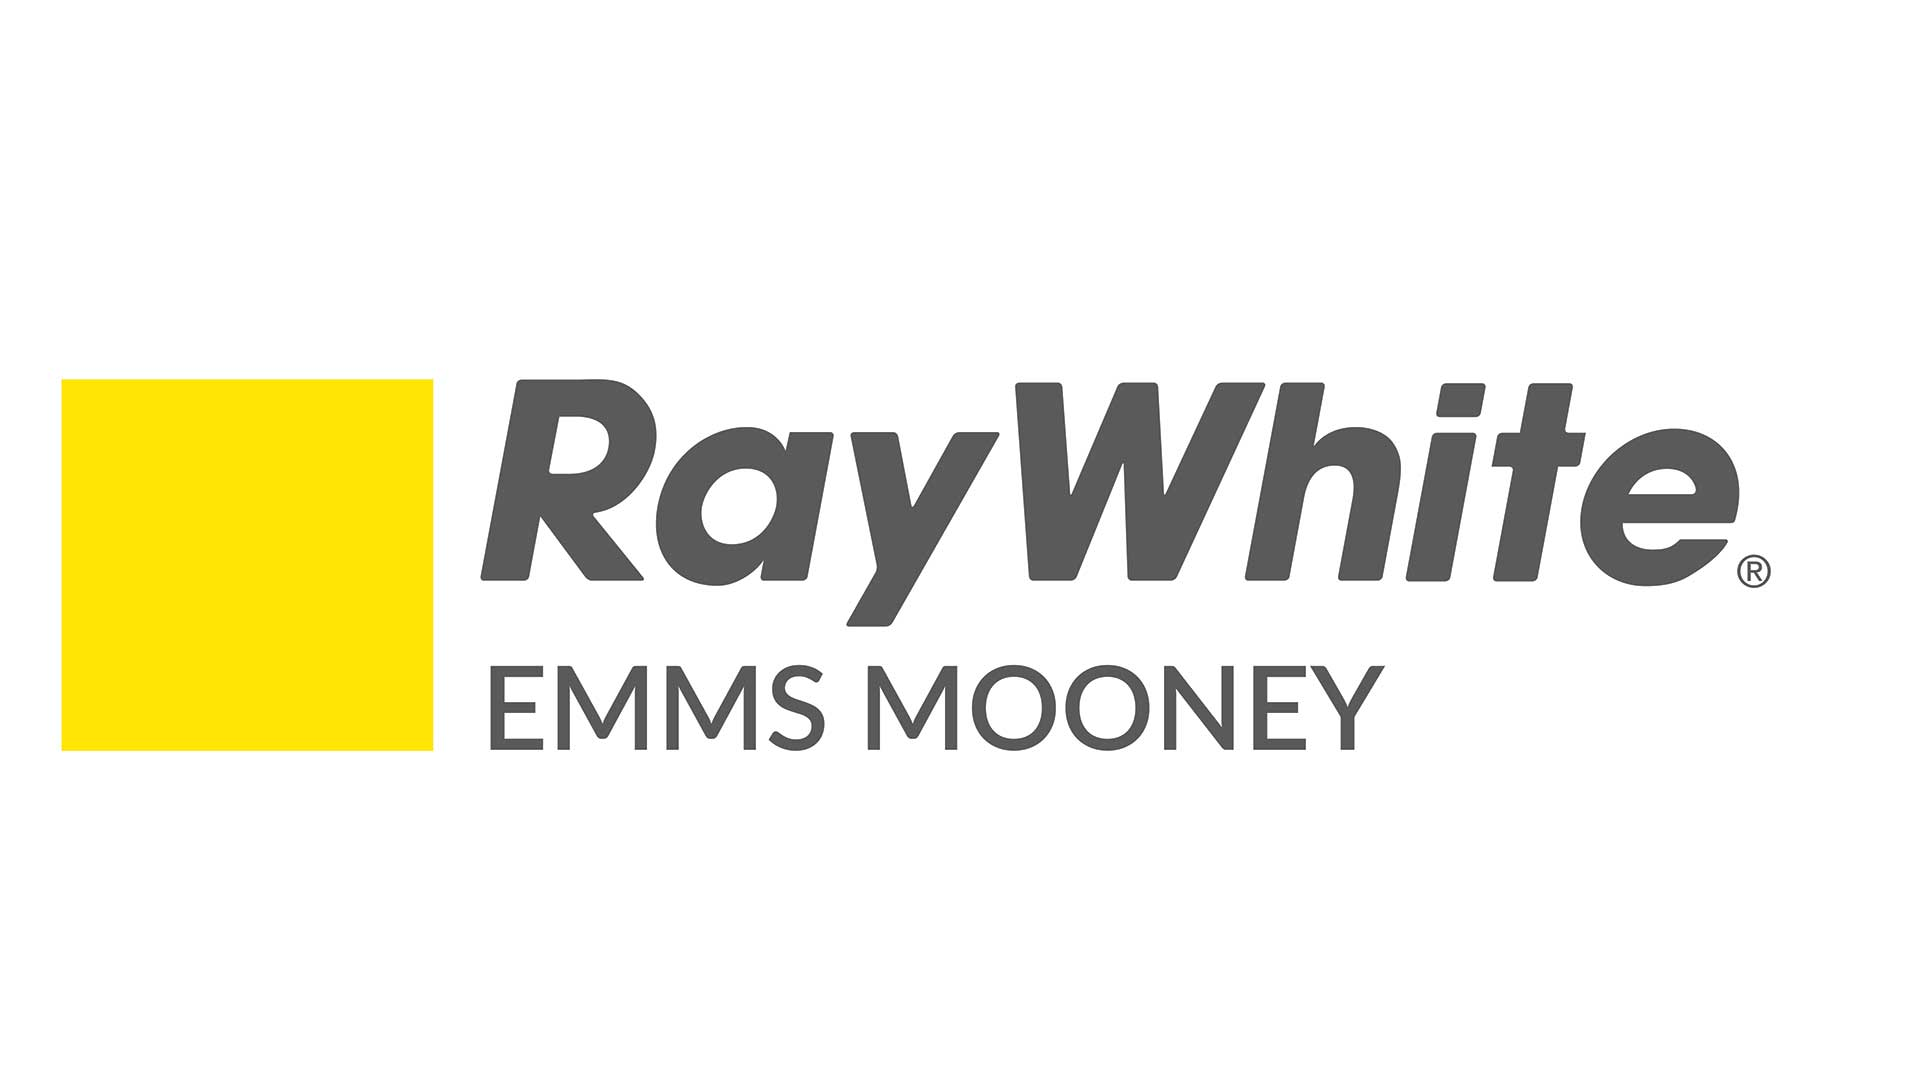 Business - Ray White Emms Mooney Real Estate | Visit Oberon